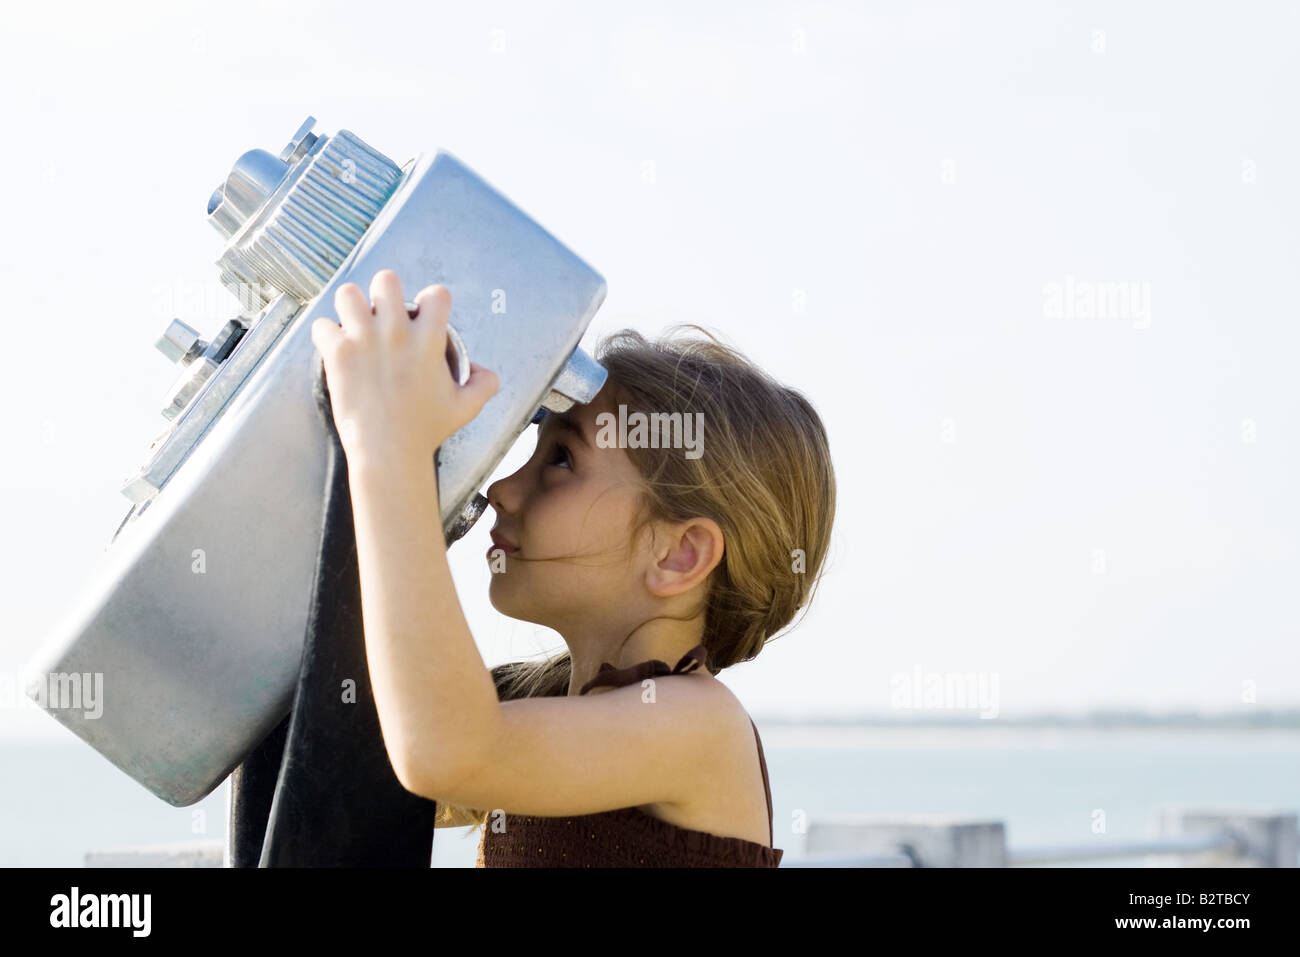 Girl looking through coin-operated binoculars, side view - Stock Image